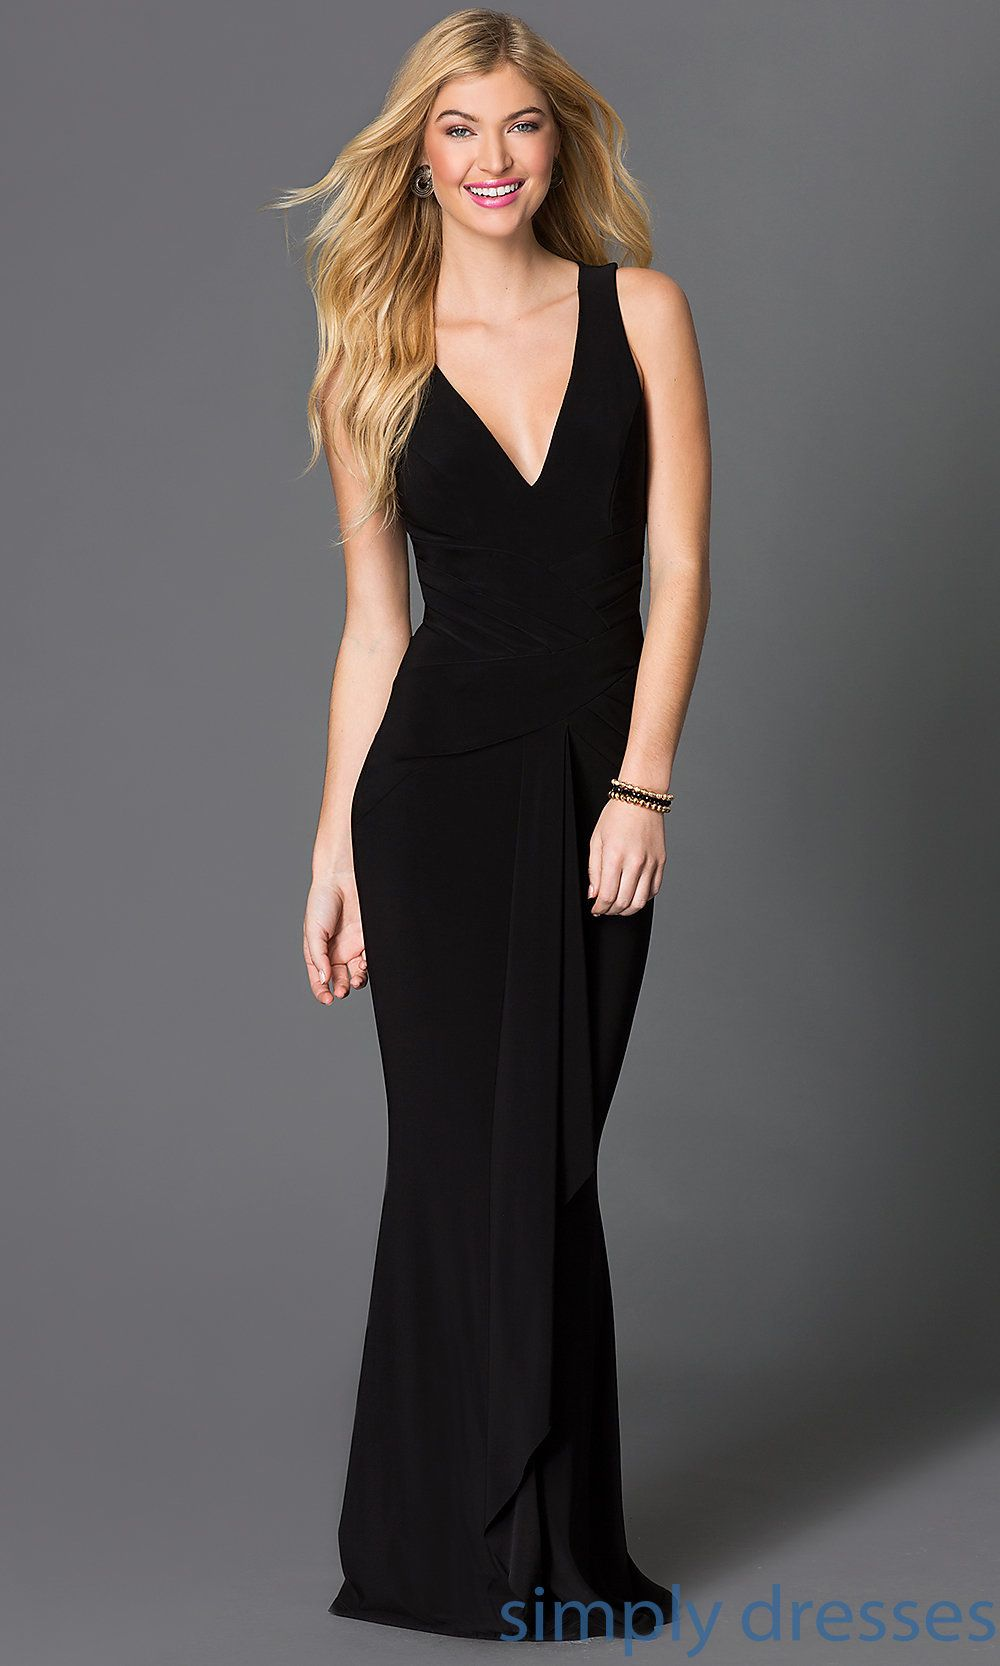 Shop floor length black formal gowns with plunging necklines at